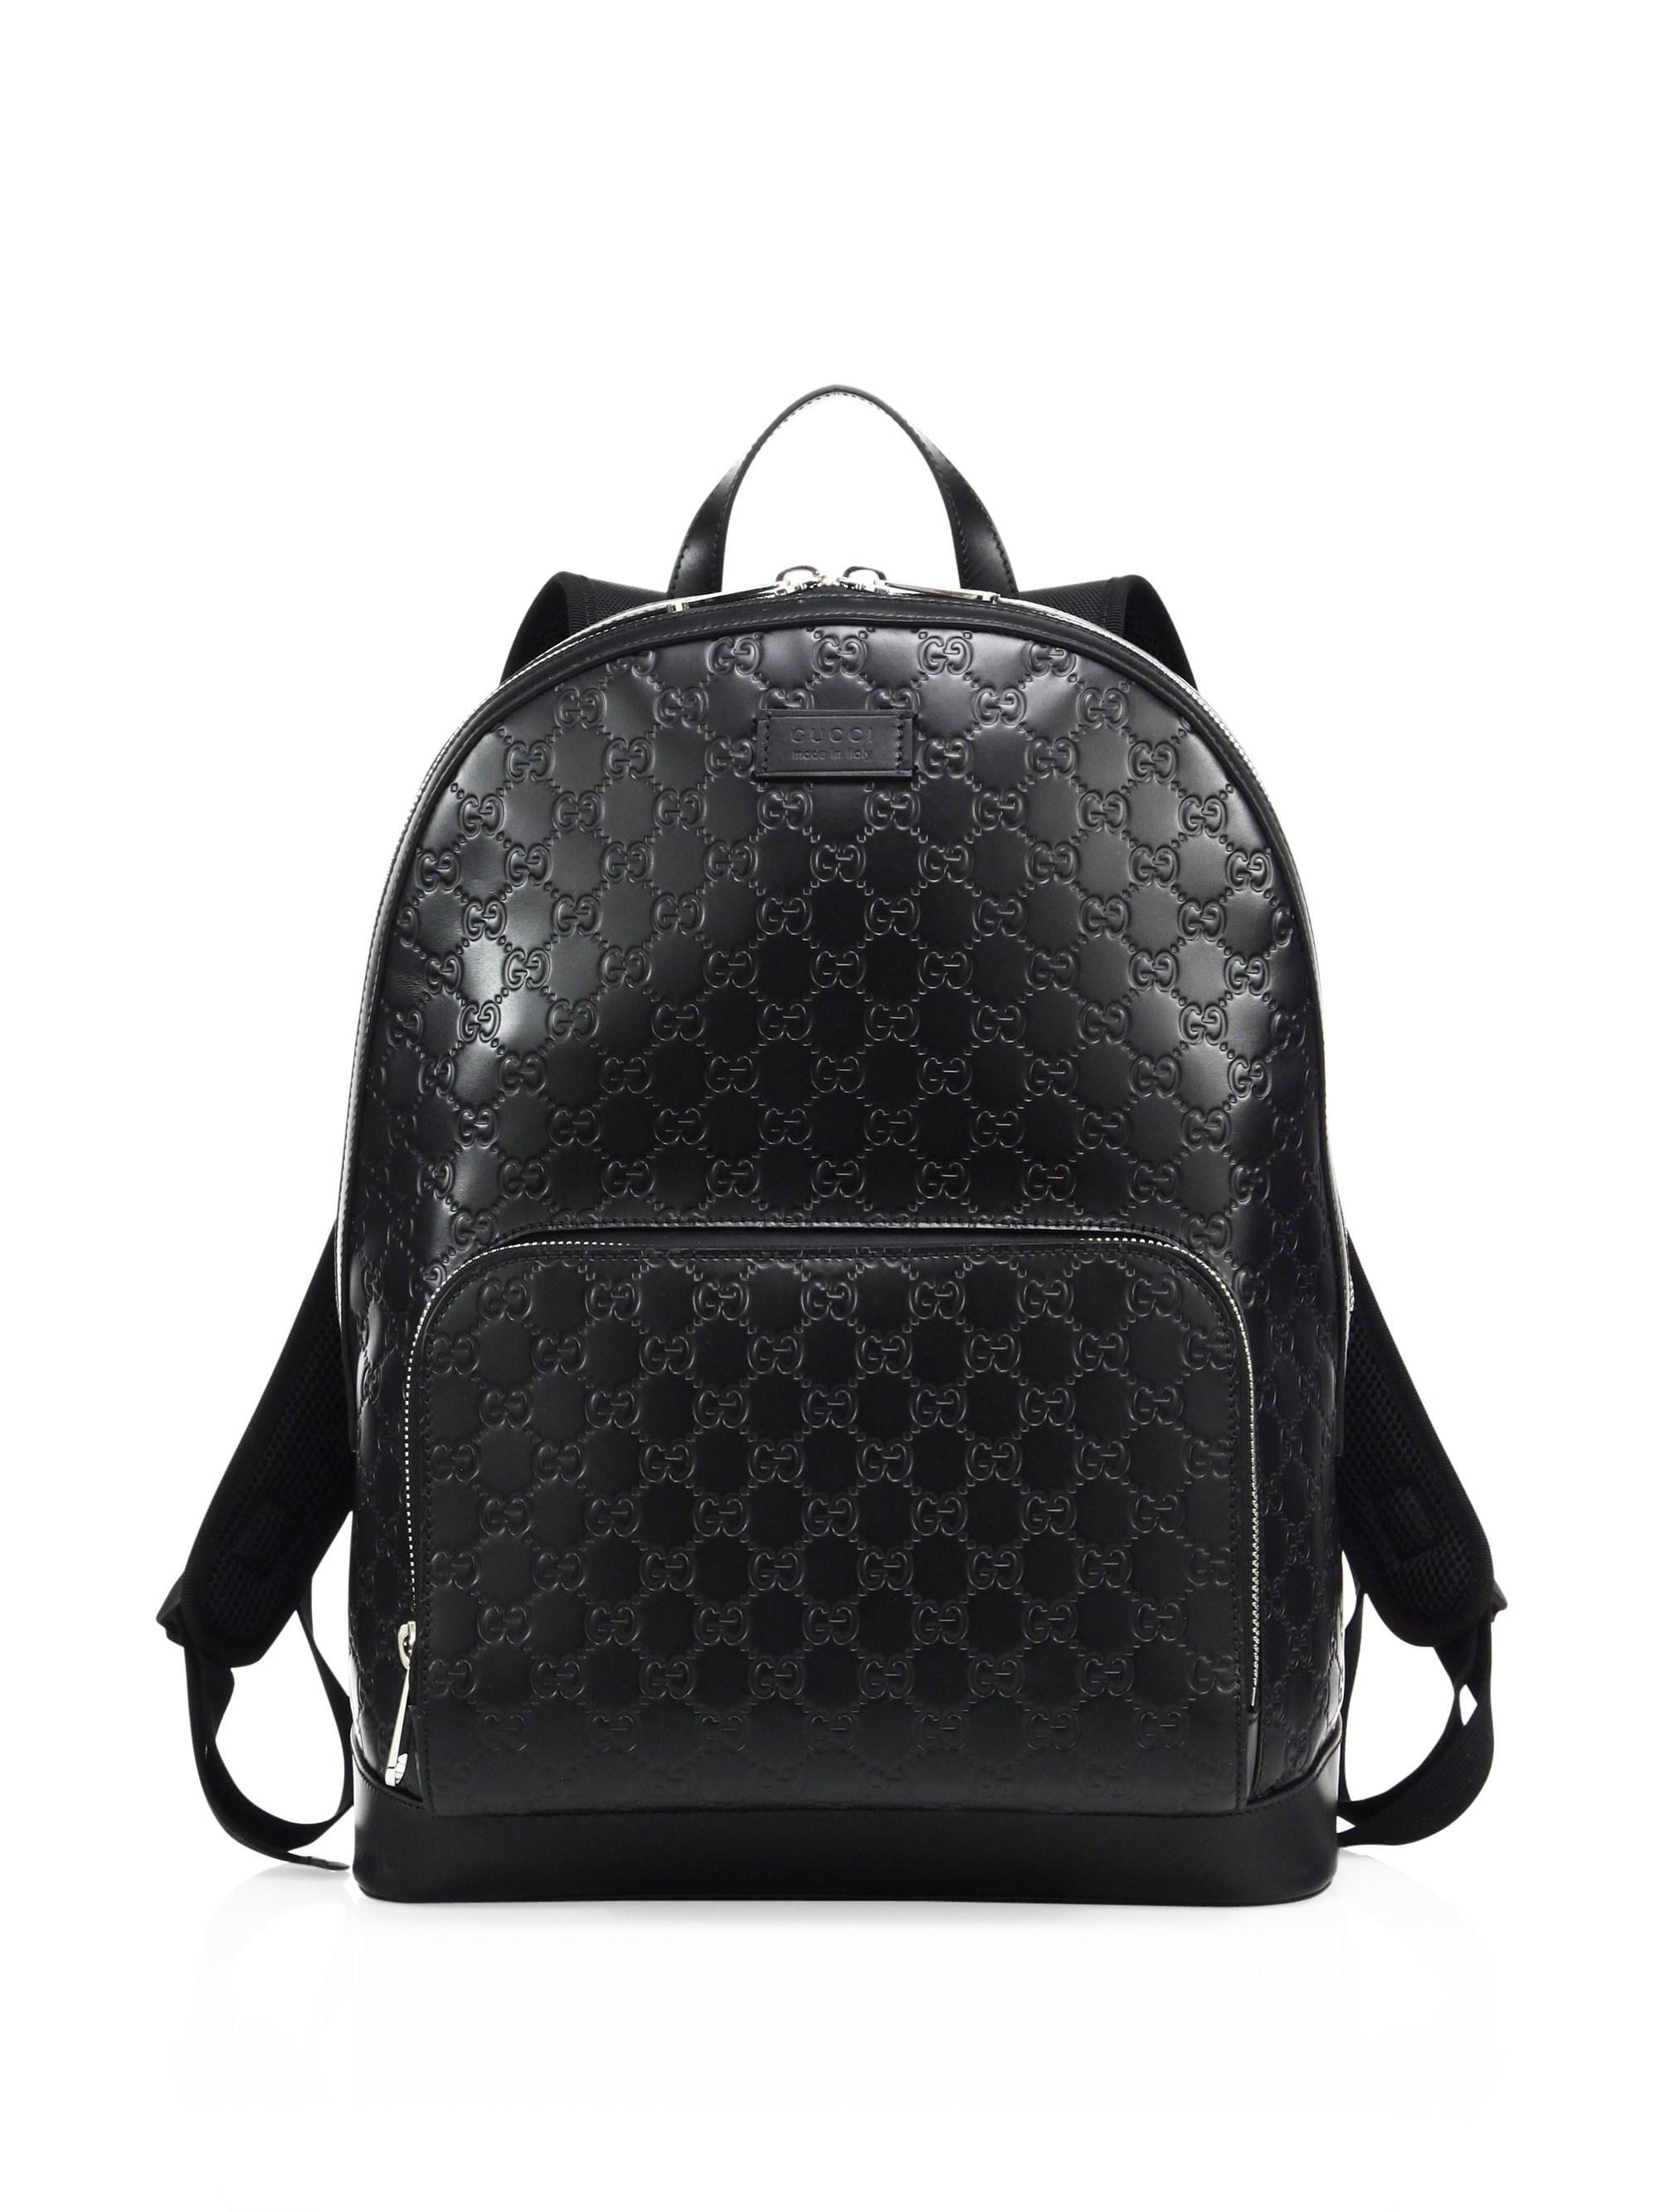 81d7953fd117 Gucci Signature Embossed Leather Backpack in Black for Men - Lyst